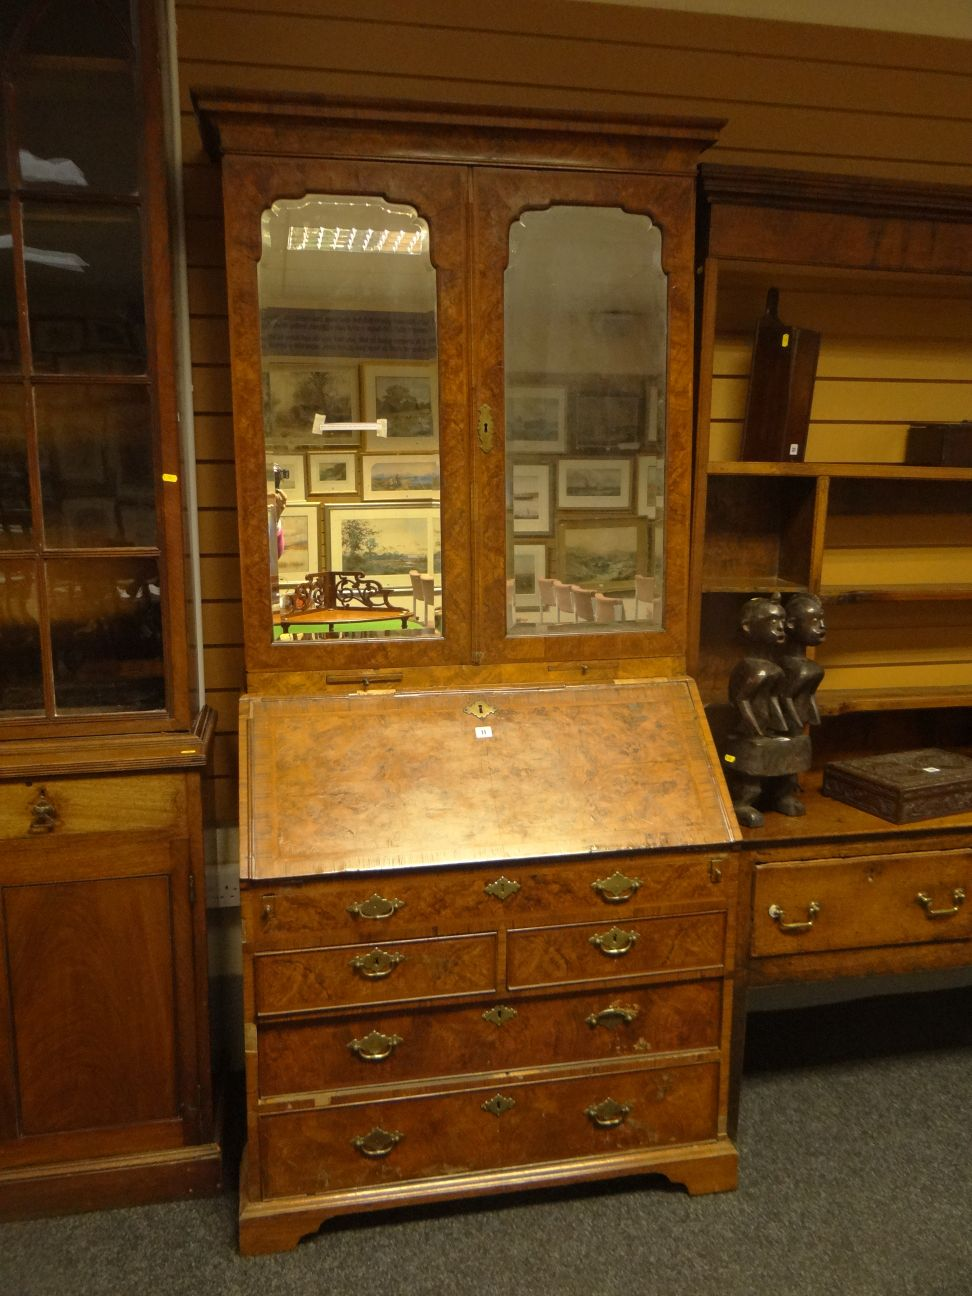 Lot 11 - An early eighteenth century figured walnut bureau bookcase, the upper section having a pair of